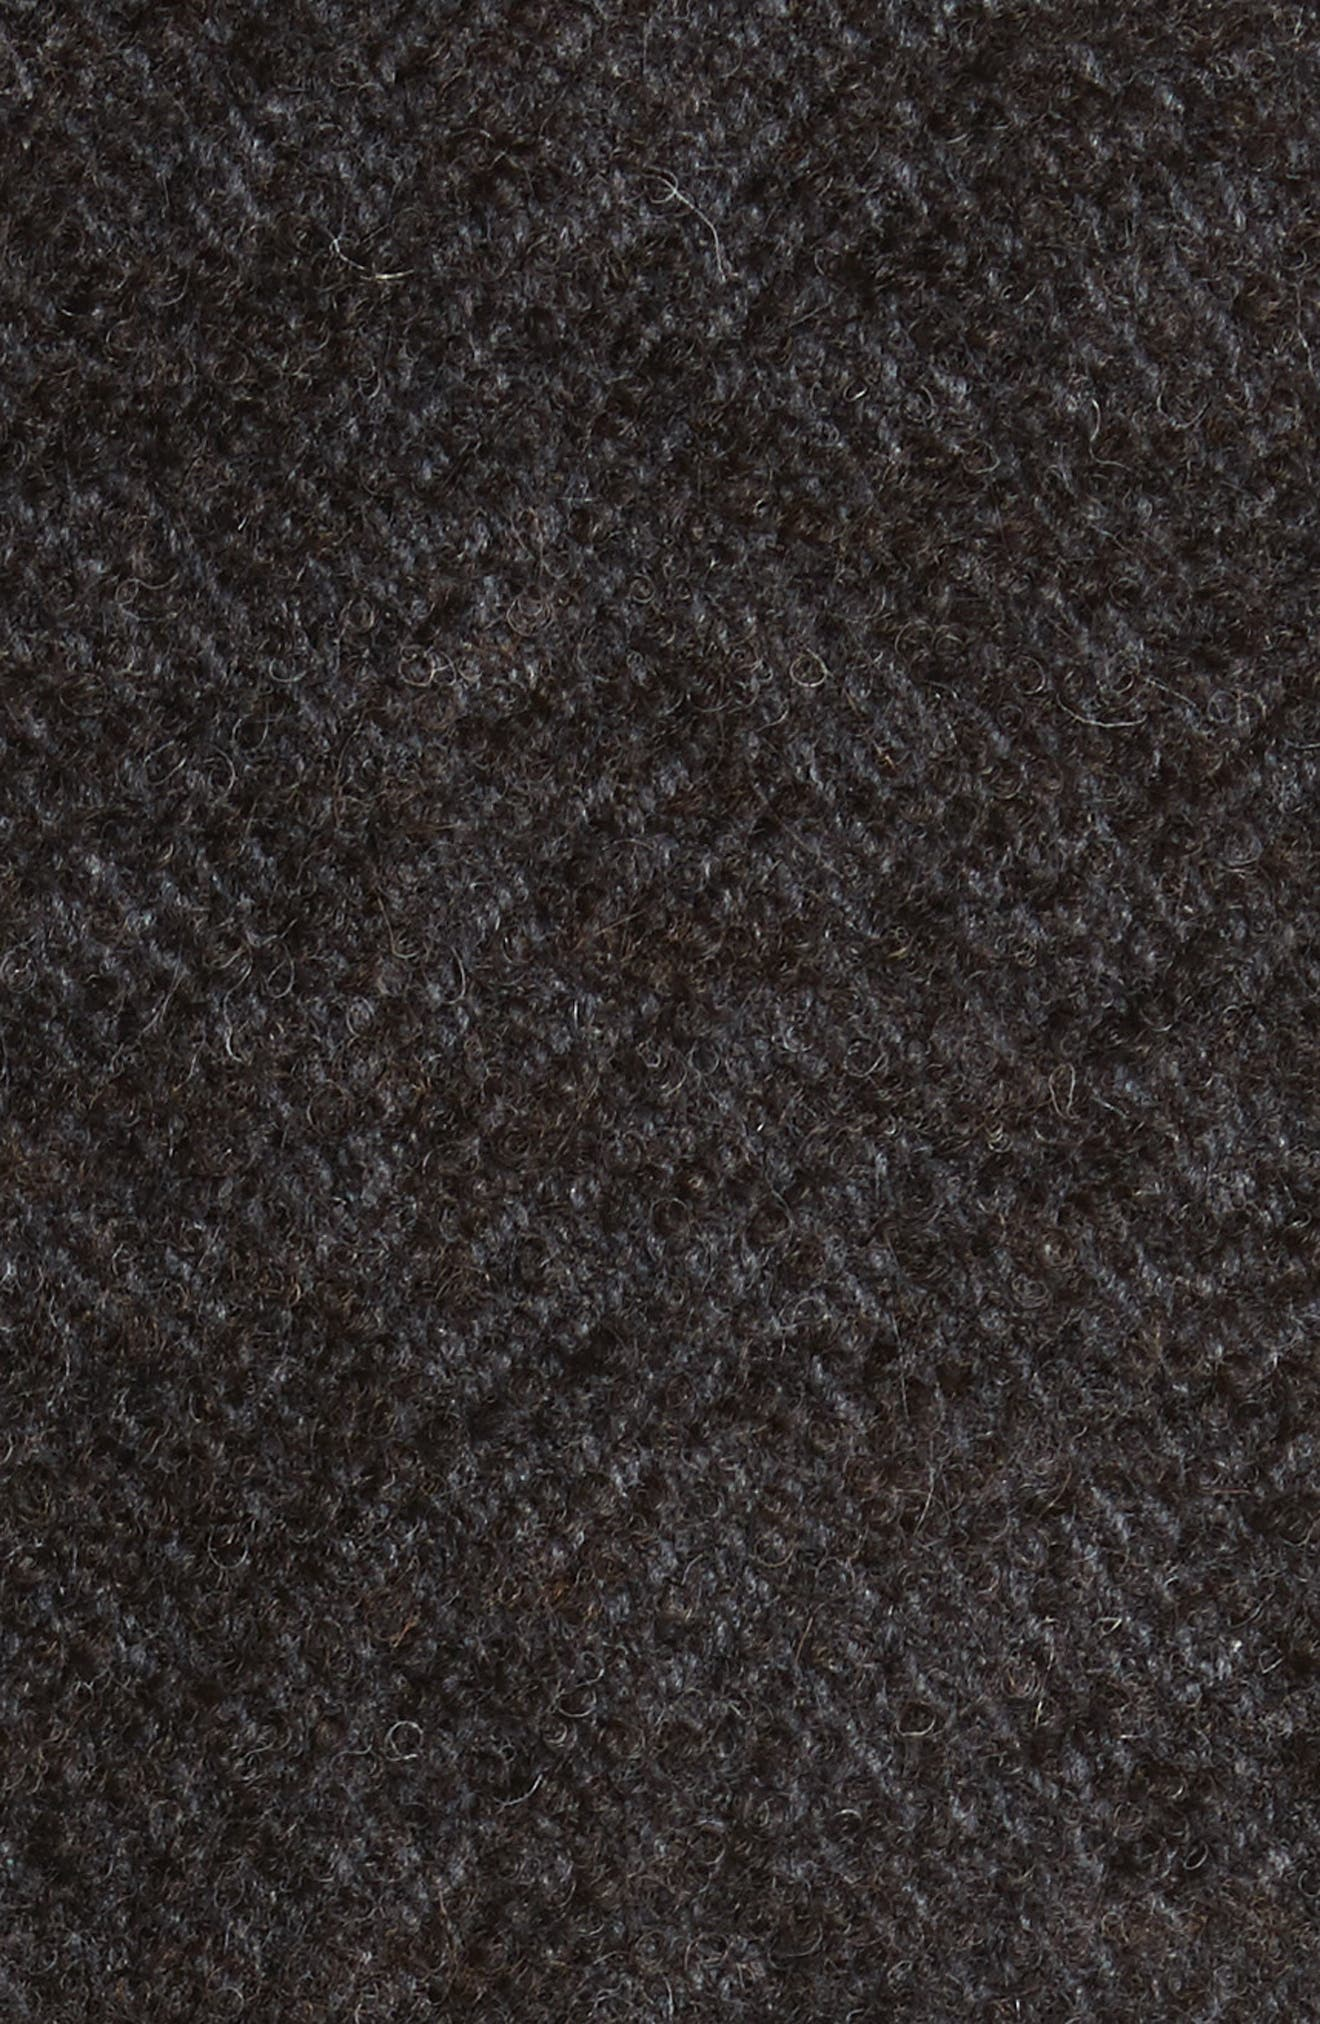 Walsh Wool Blend Topcoat,                             Alternate thumbnail 5, color,                             210